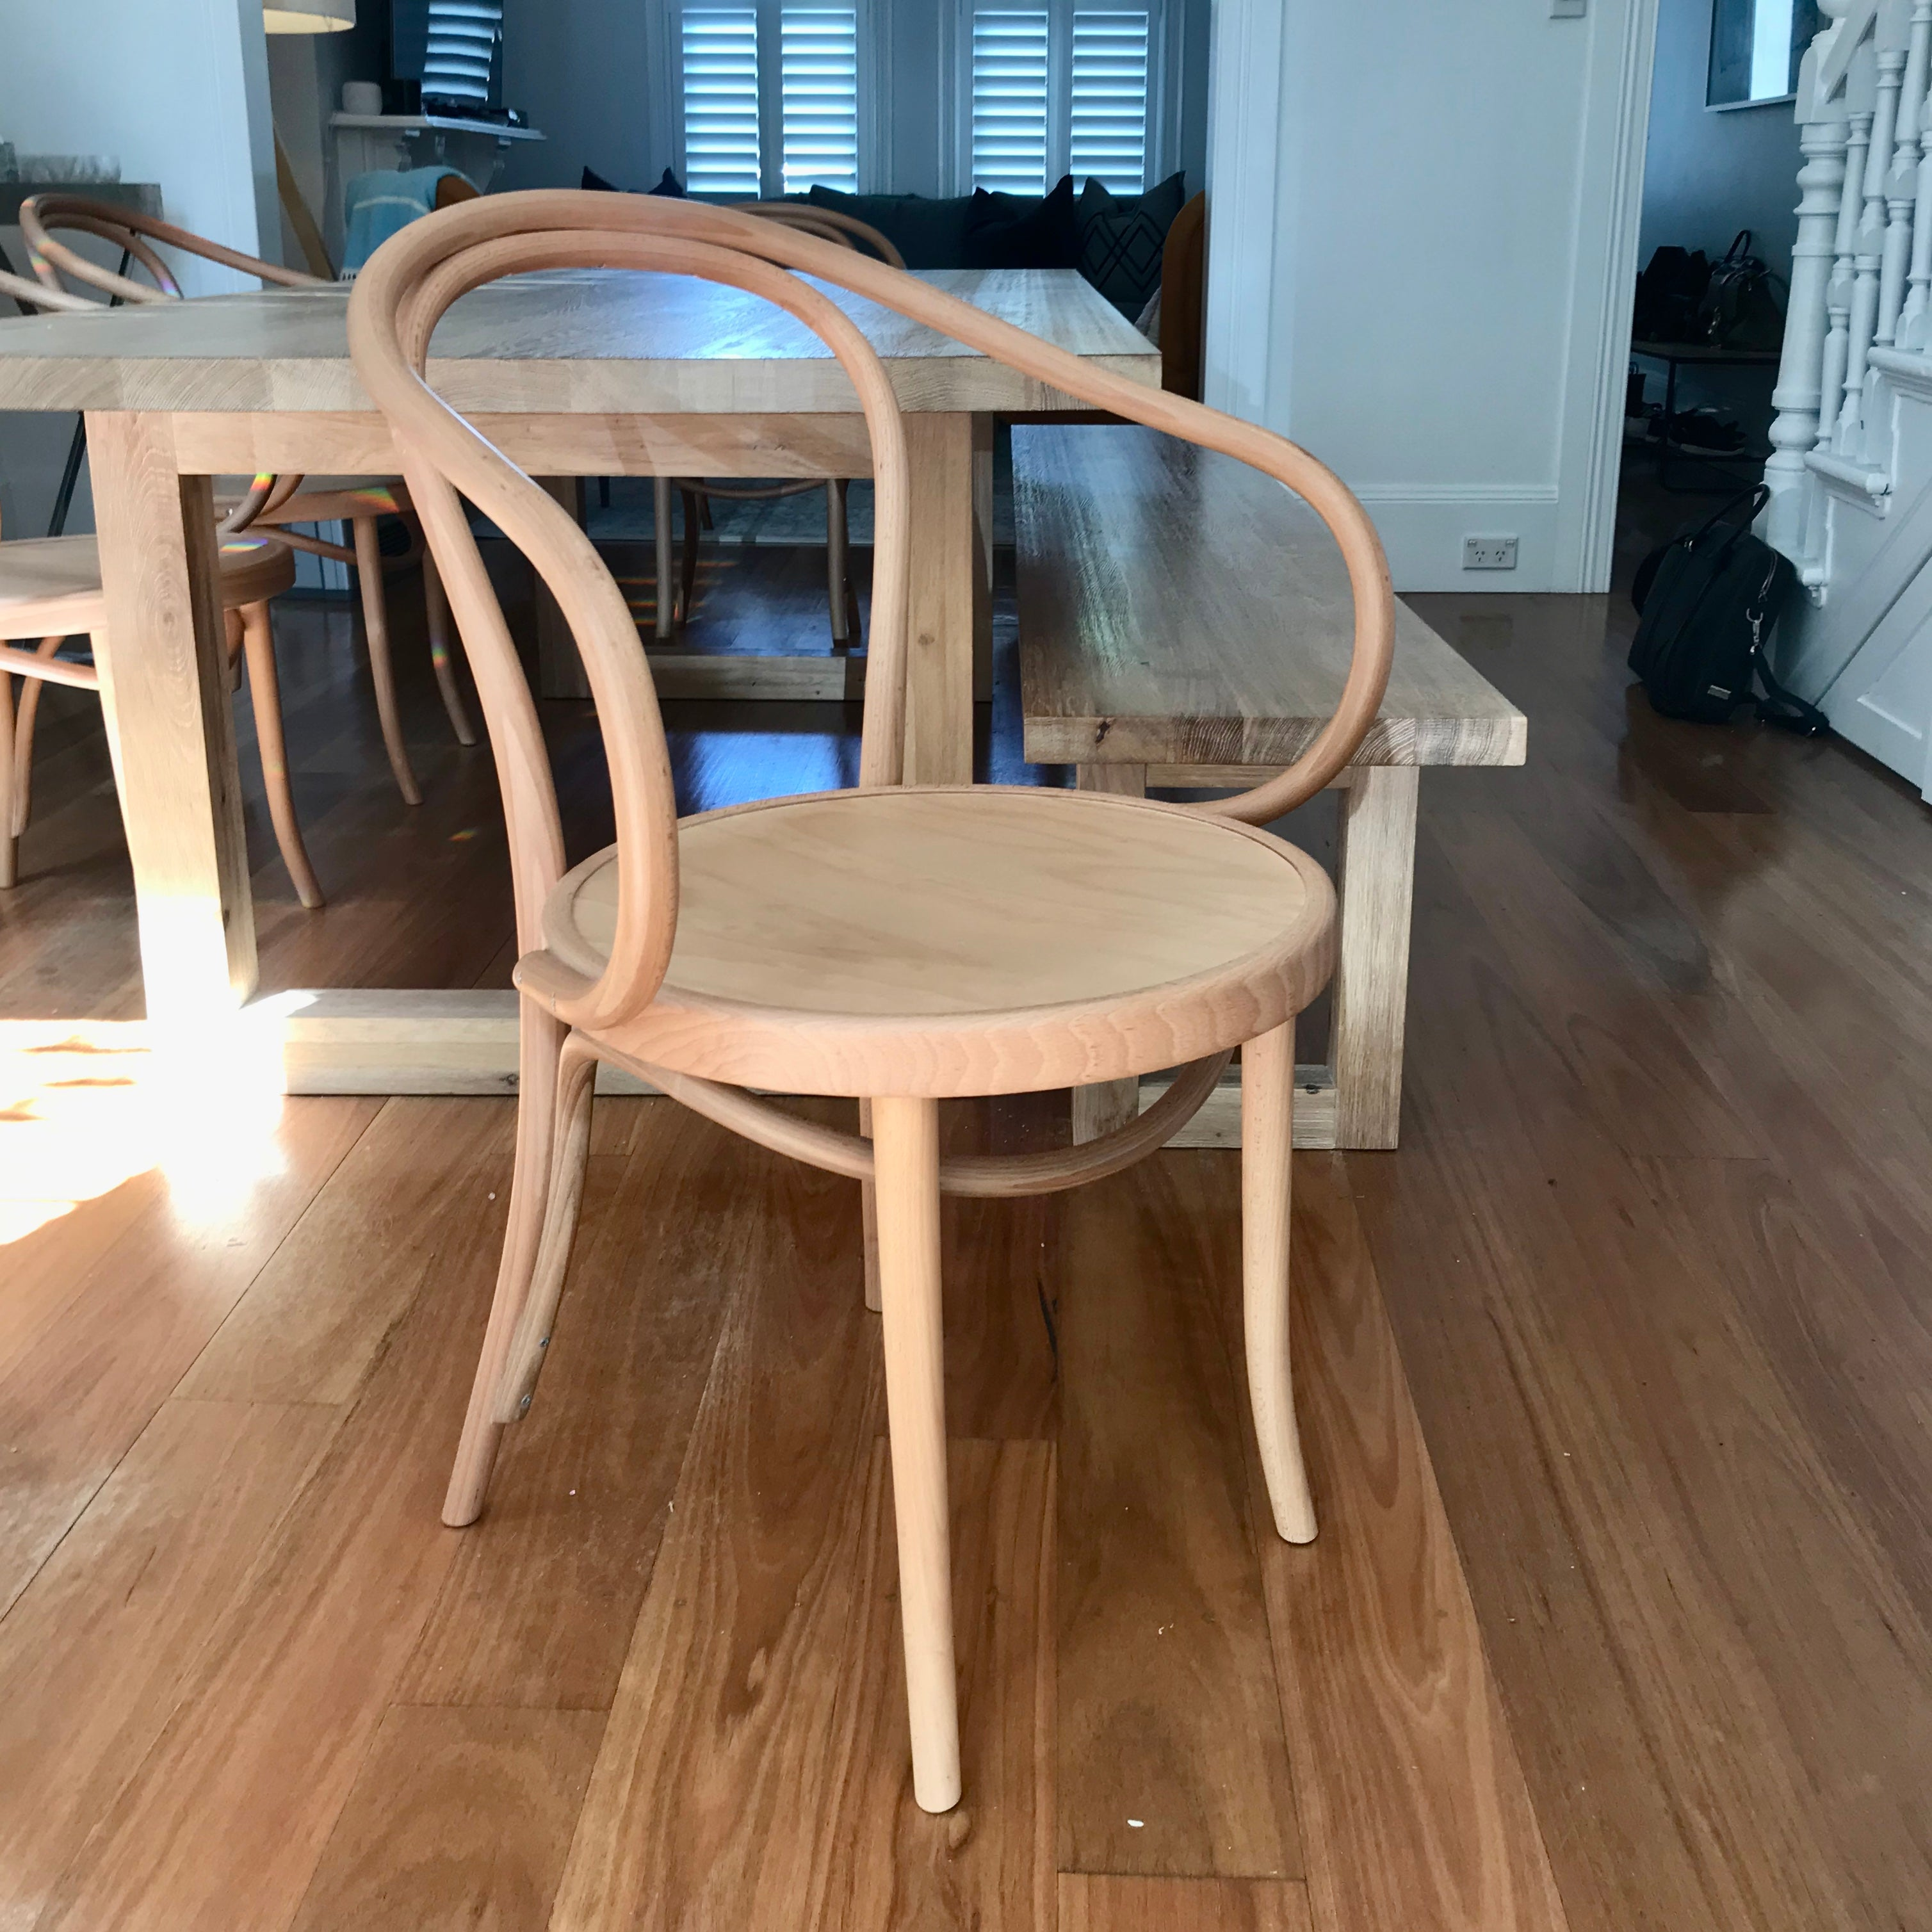 Set of FOUR No. B9 Chair by Michael Thonet for Thonet